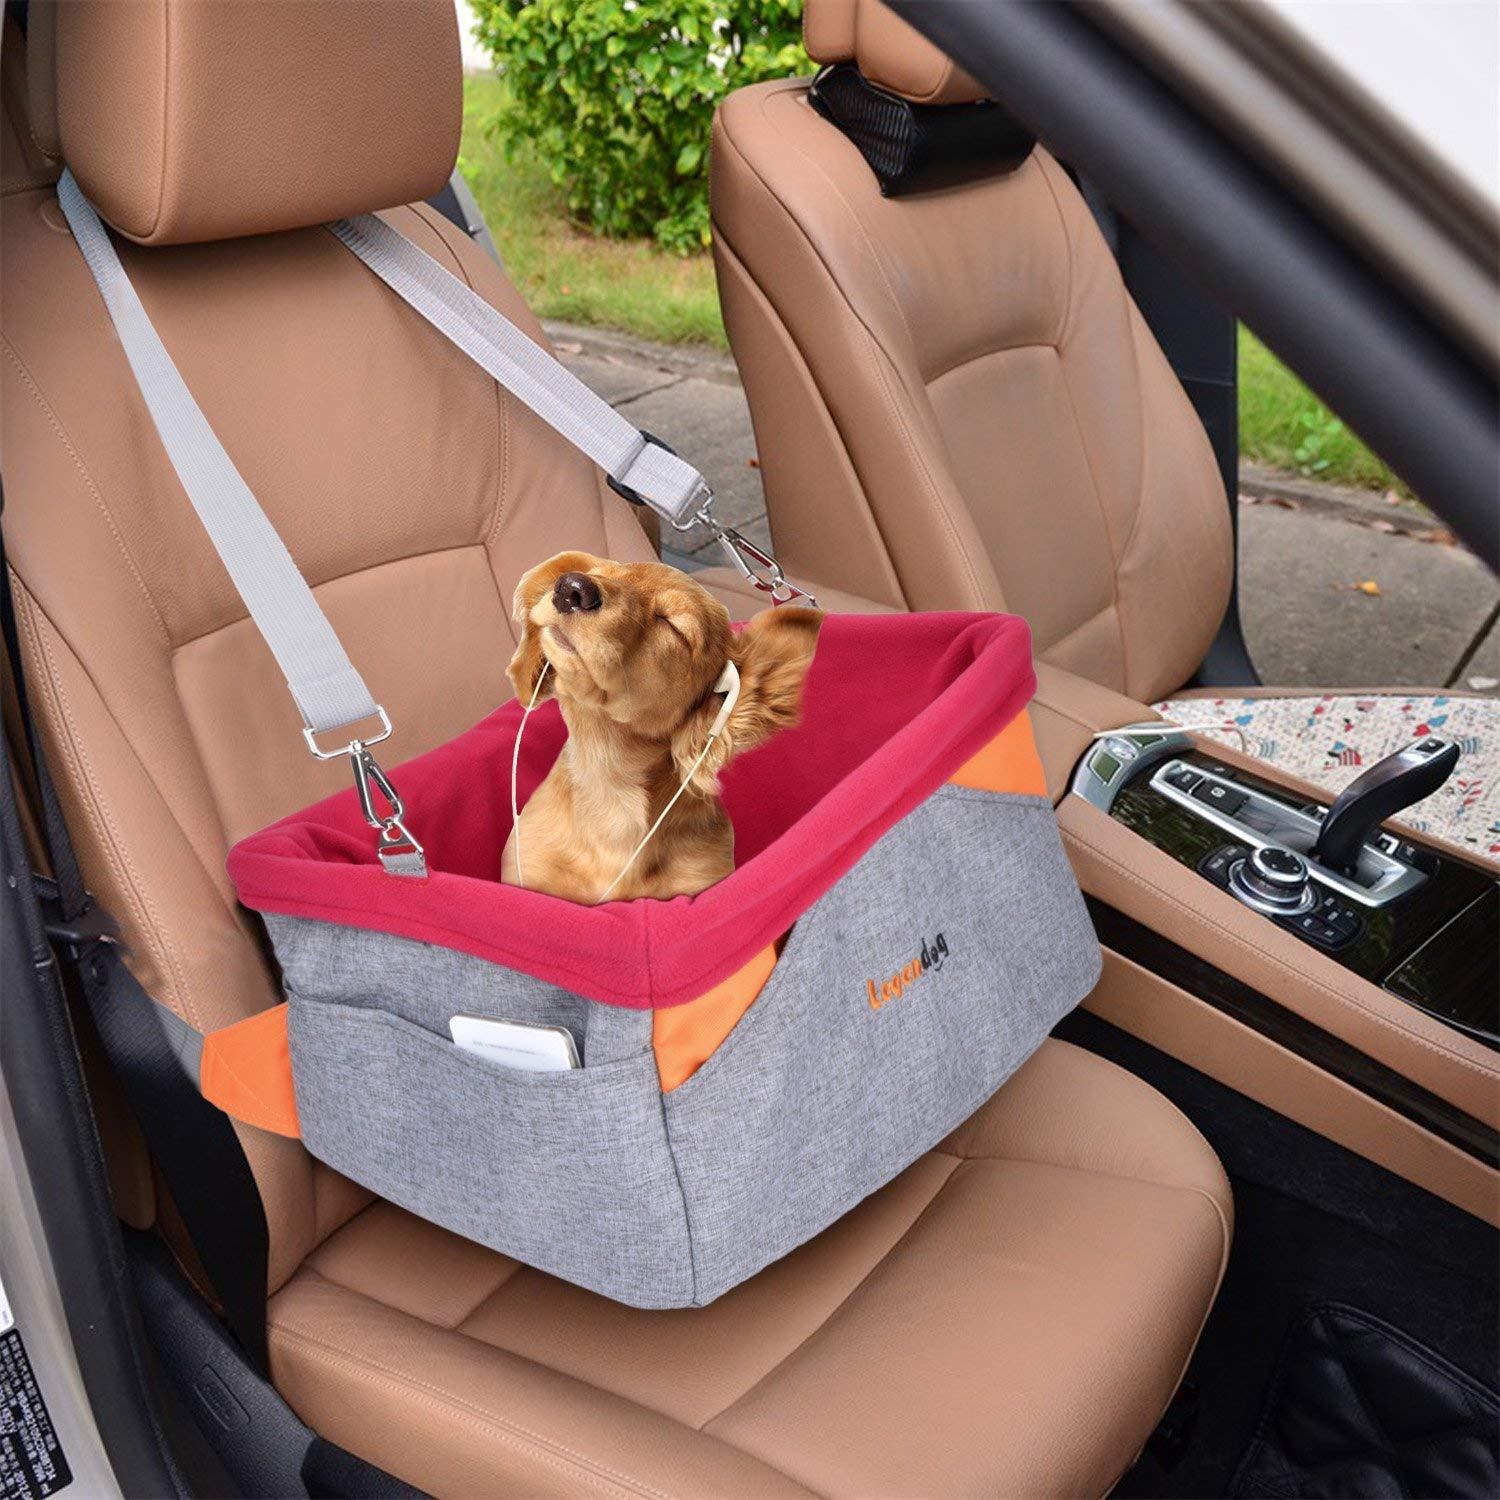 Legendog Dog Car Seat, Pet Booster Portable Travel Pet Car Seat Carrier for Dogs & Cats, Waterproof Pet Booster Carrier with Cushion & Adjustable Strap (Pet Car Seat) (Red) by Legendog